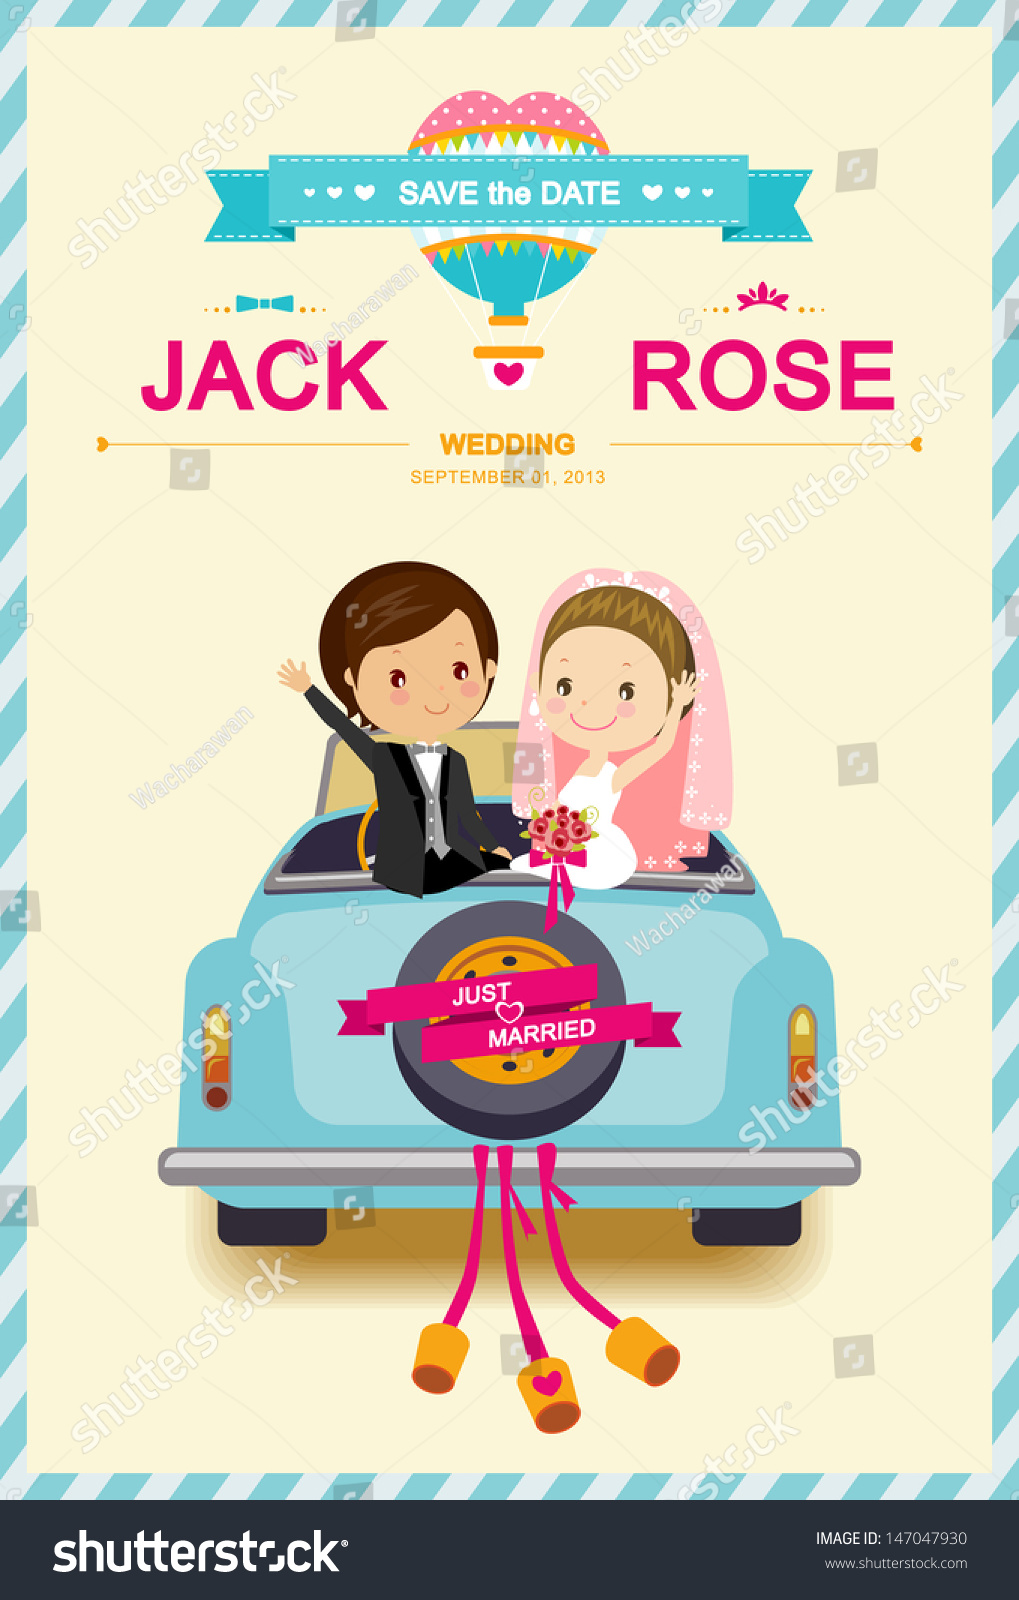 Cars Invitation Card Template Free: Cute Bride Groom Wedding Car Wedding Stock Vector